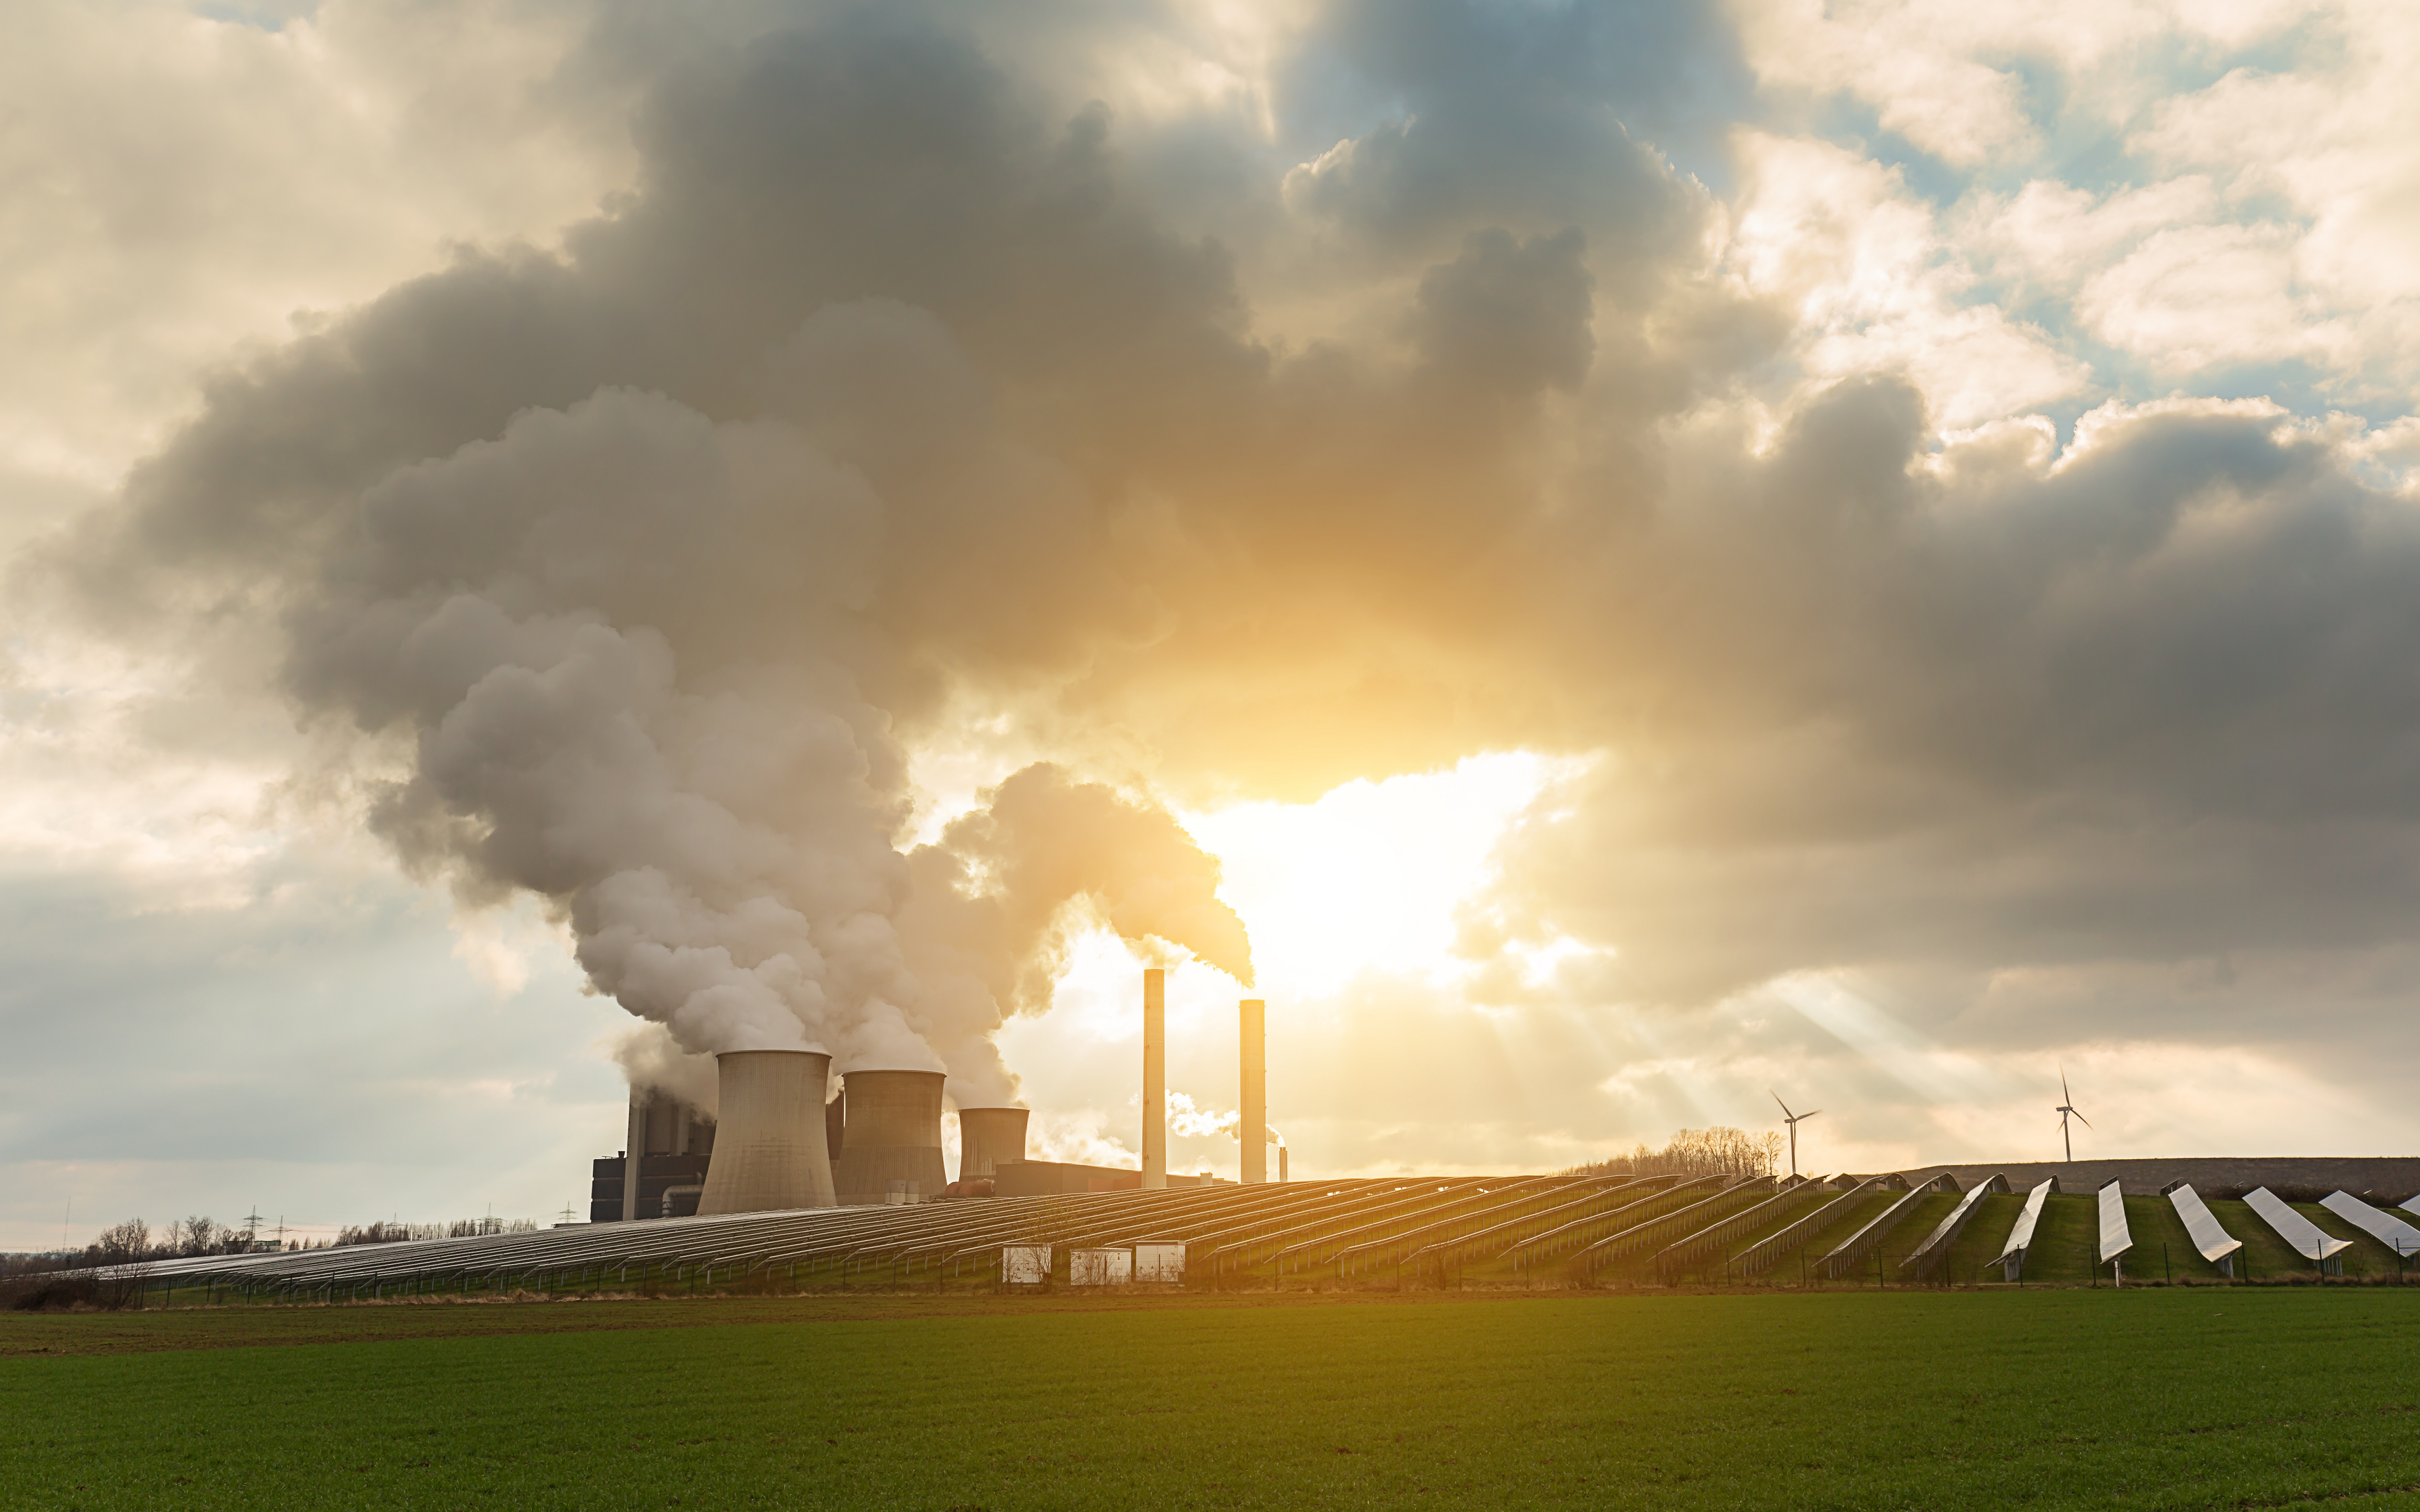 A Coal-fired power plant, solar energy and windmills. Photo/Credit: rclassenlayouts/iStock.com